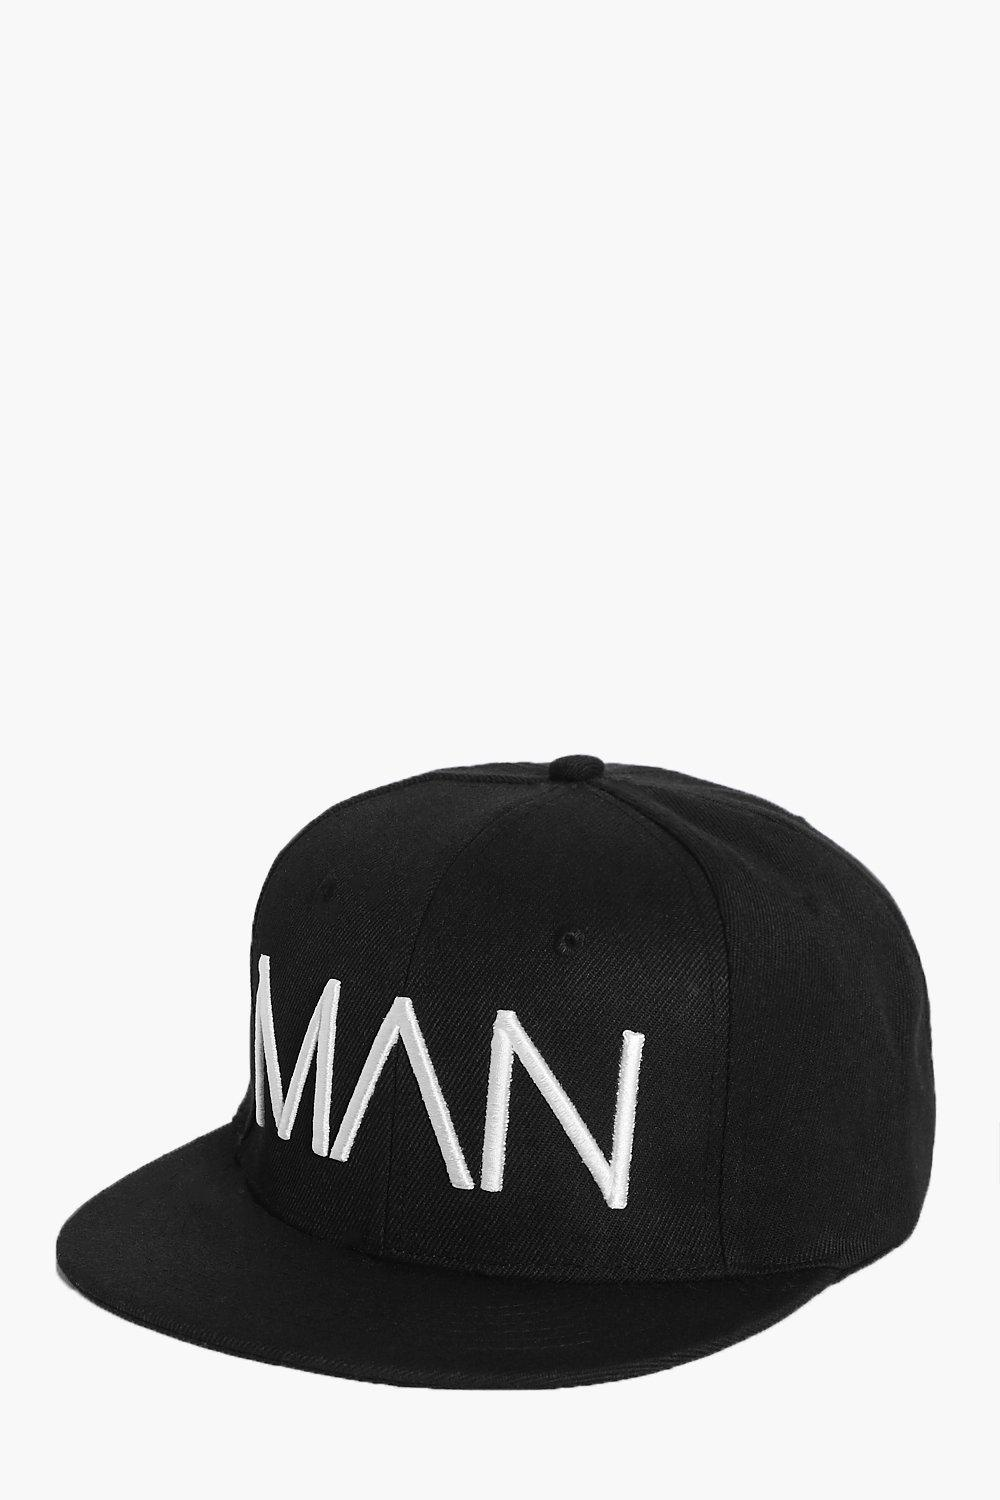 Edition BoohooMAN Snapback - black - Limited Editi